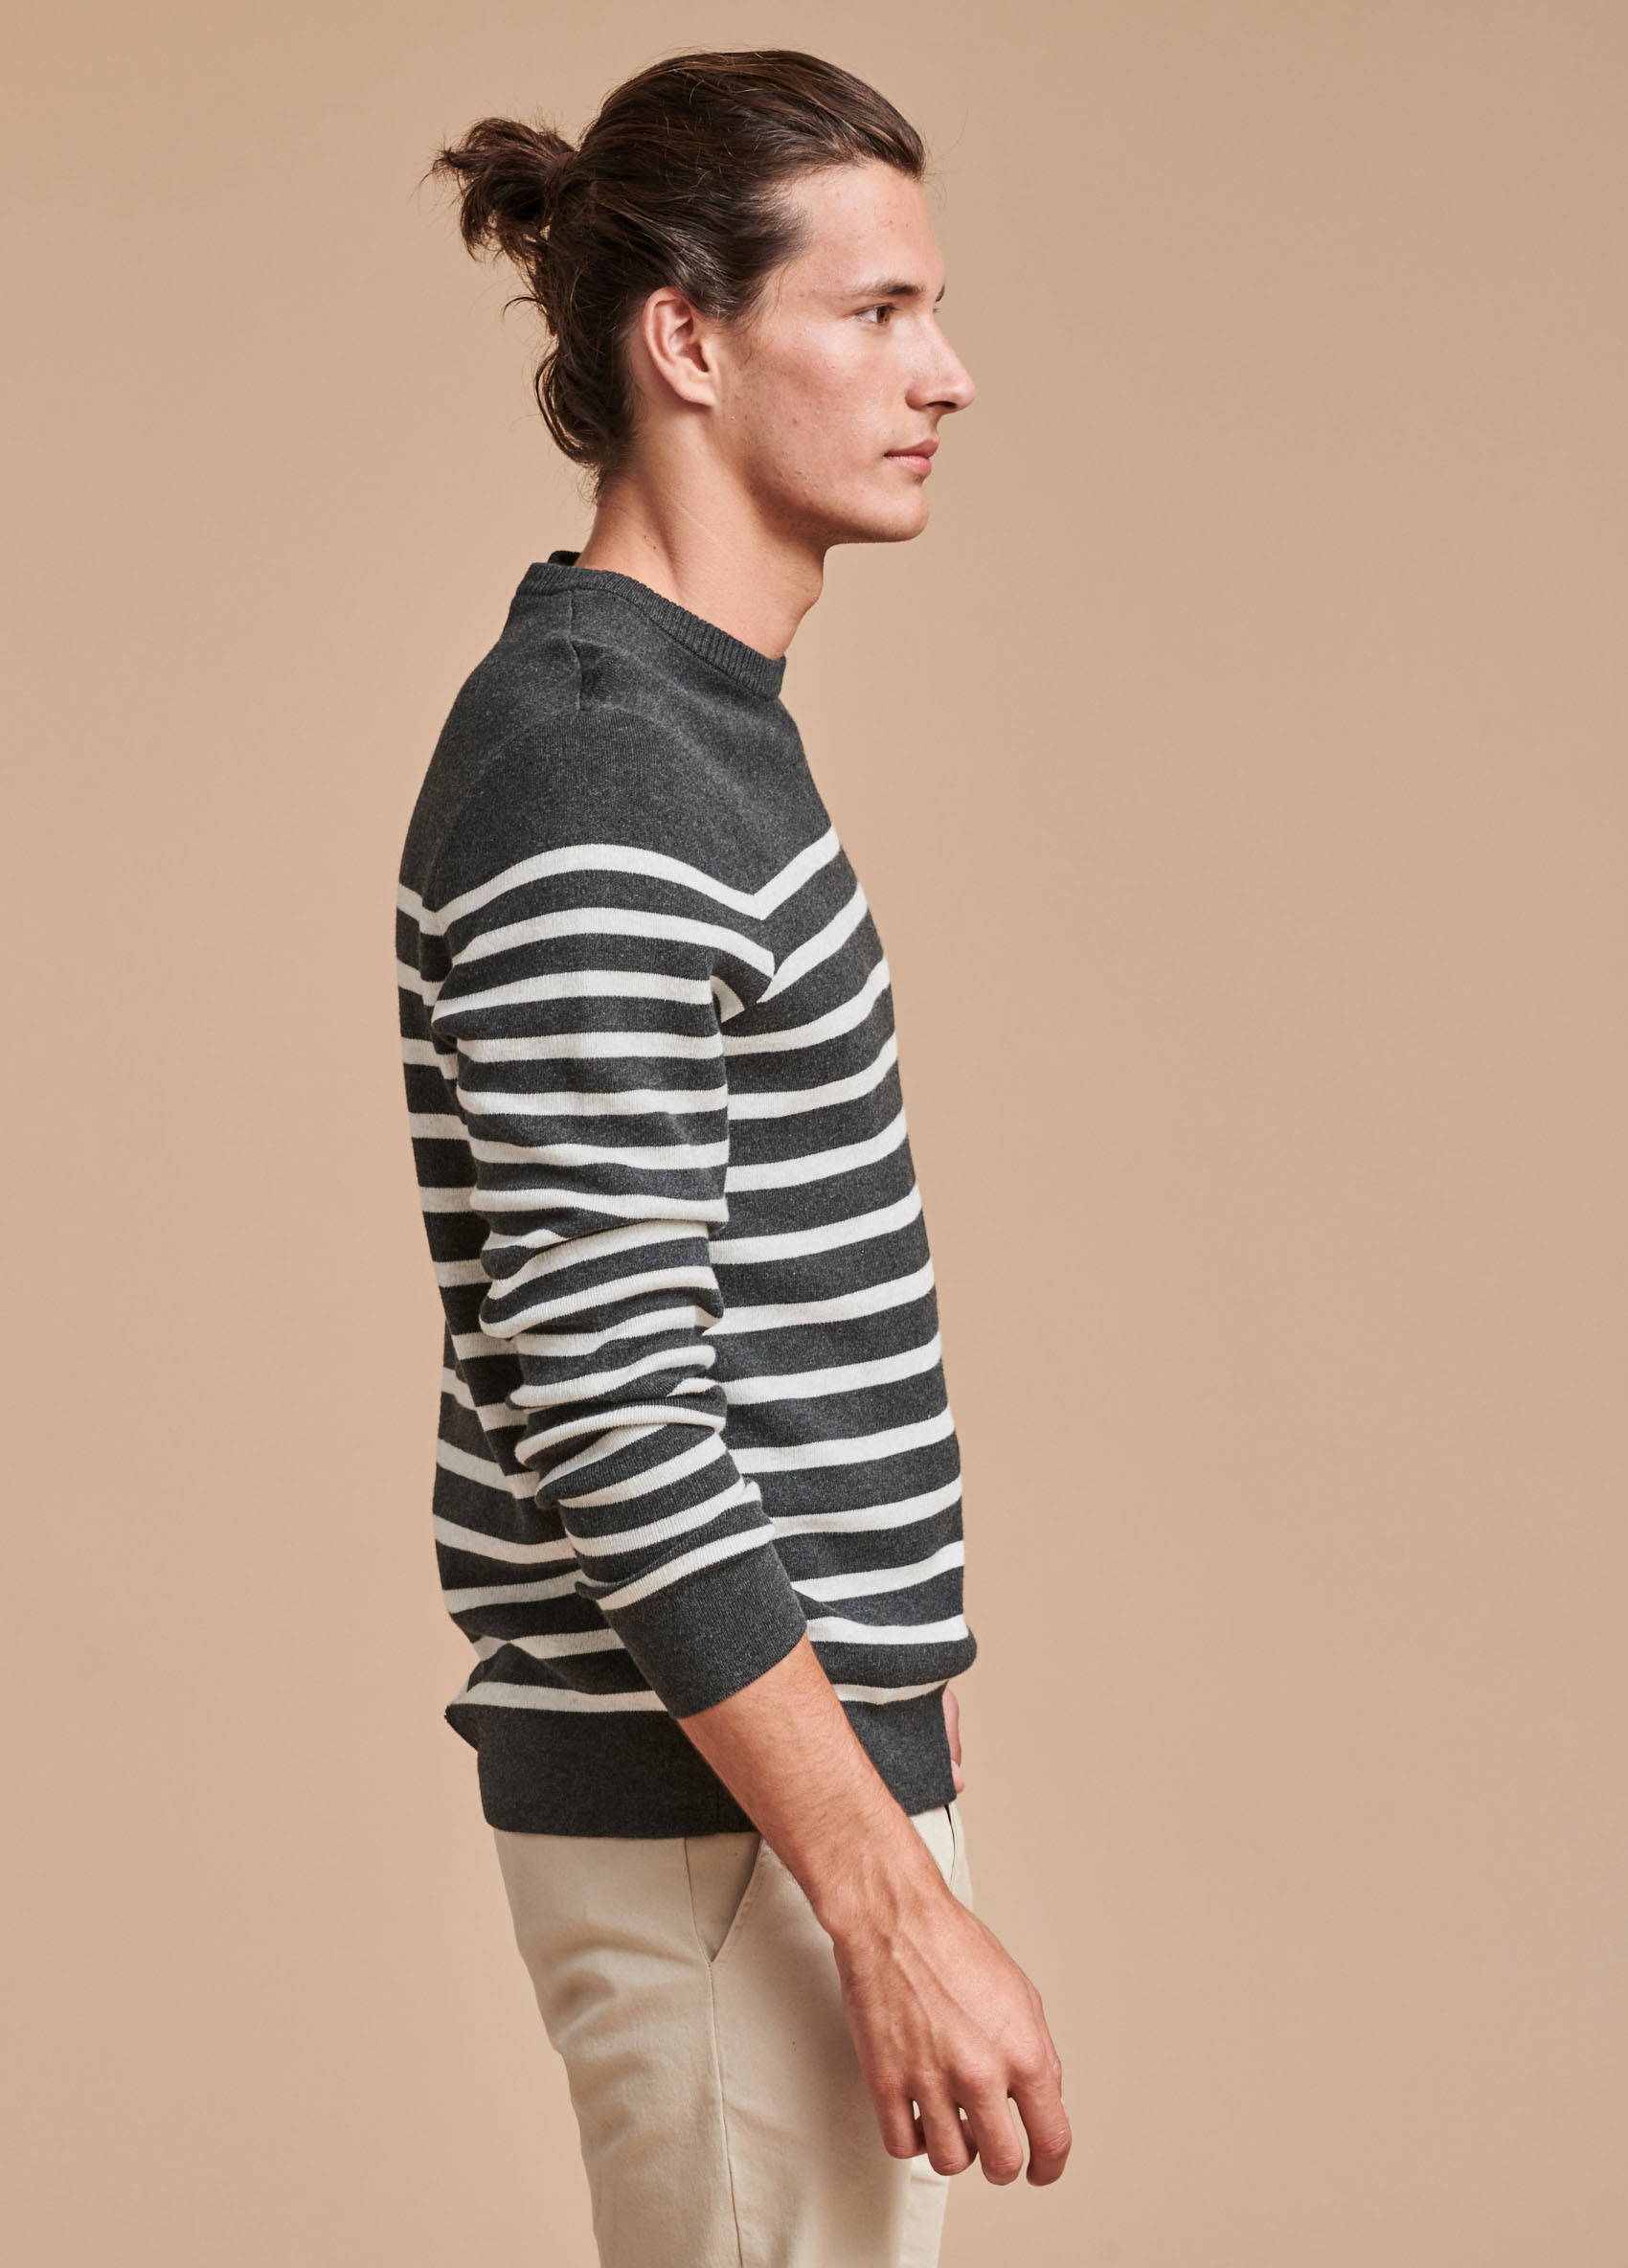 penguin_supima-cotton-breton-stripe-crew_15-19-2019__picture-9215